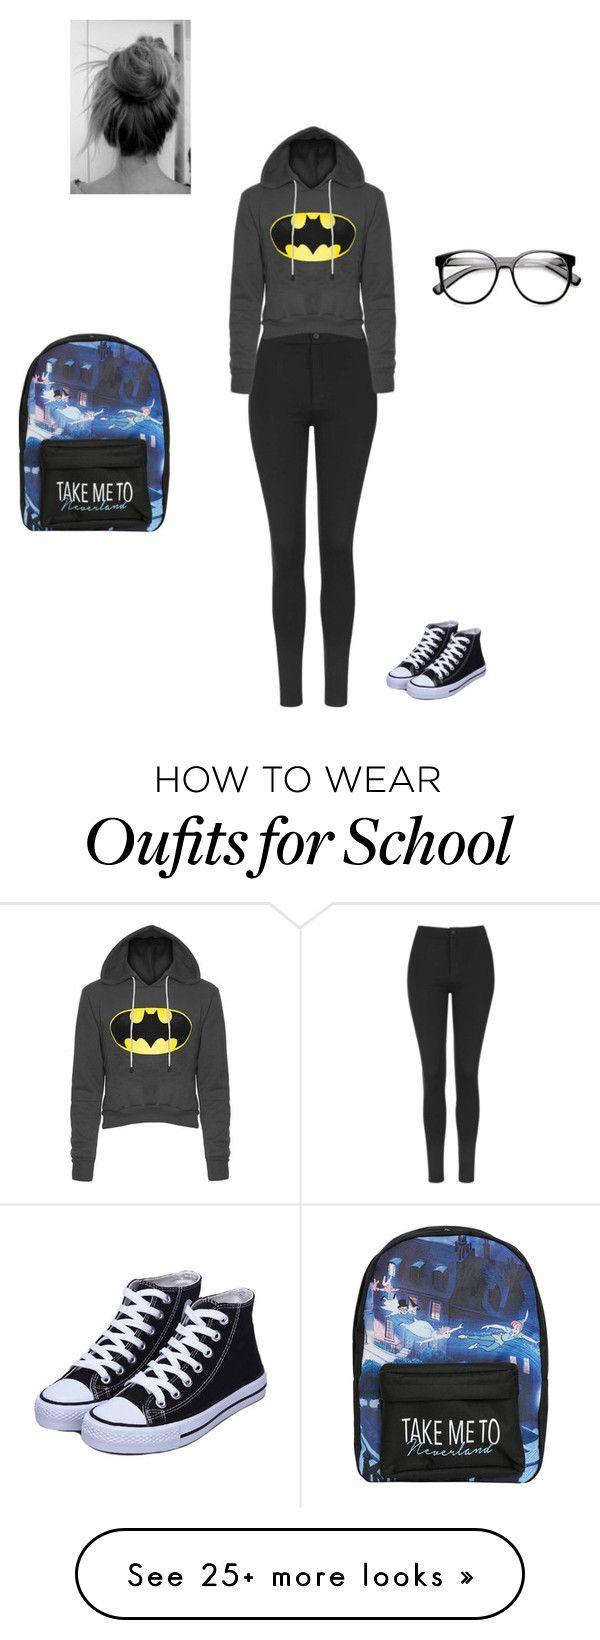 """School"" by unicornlover17 on Polyvore featuring Topshop, ZeroUV and Disney"